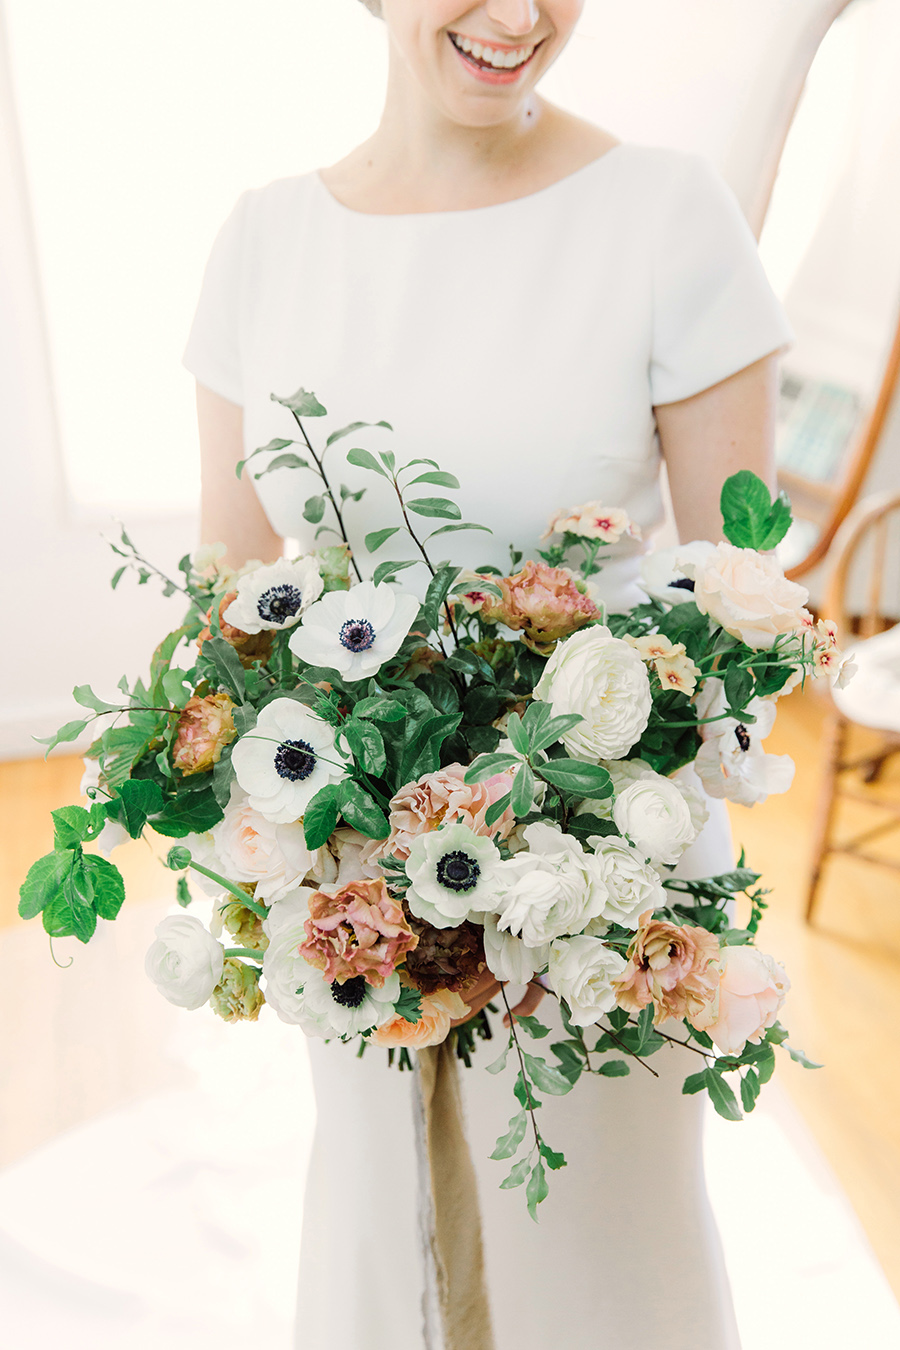 cream, pink, and peach anemones, roses, and other blooms floral bouquet